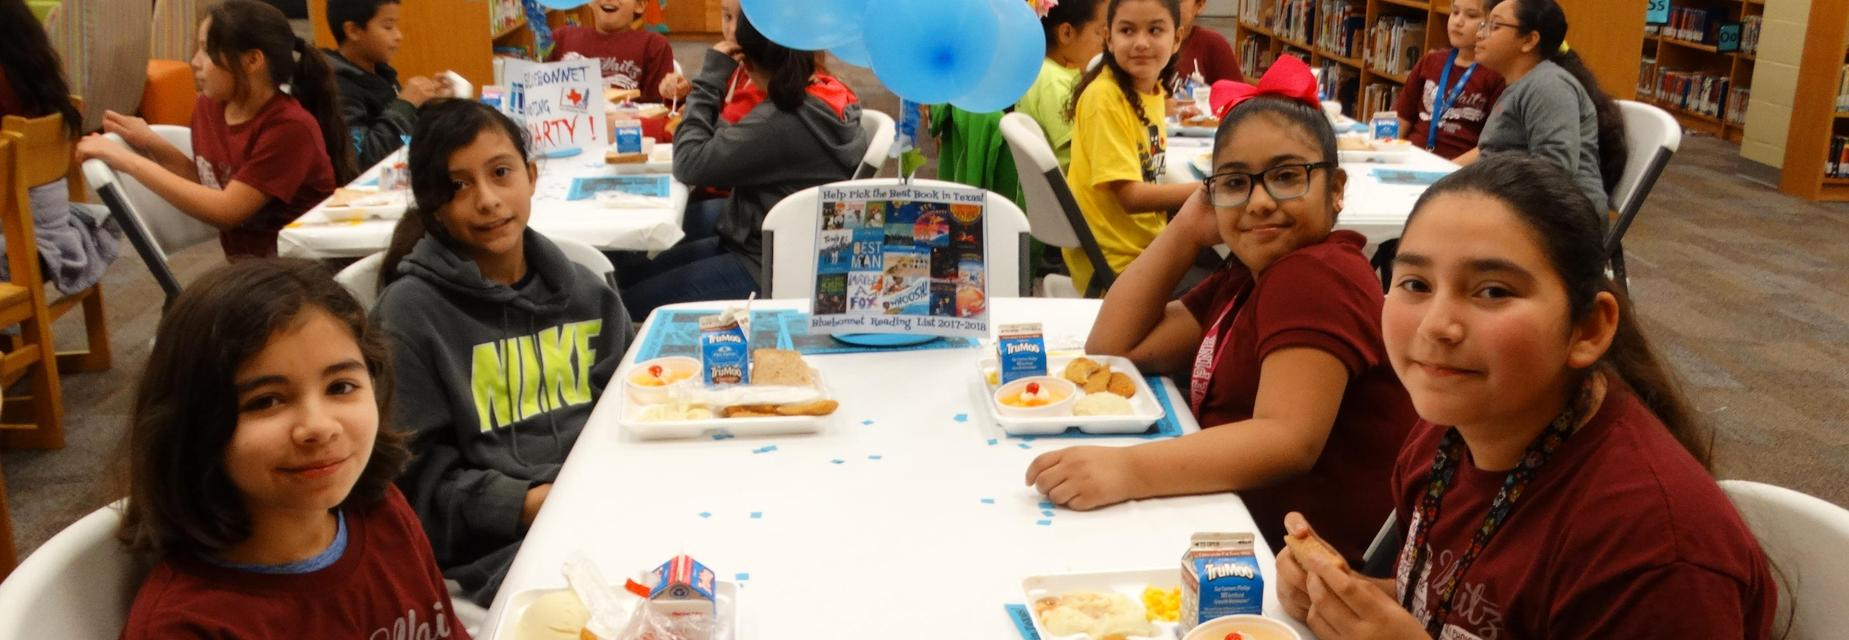 5th graders at Bluebonnet Voting Luncheon